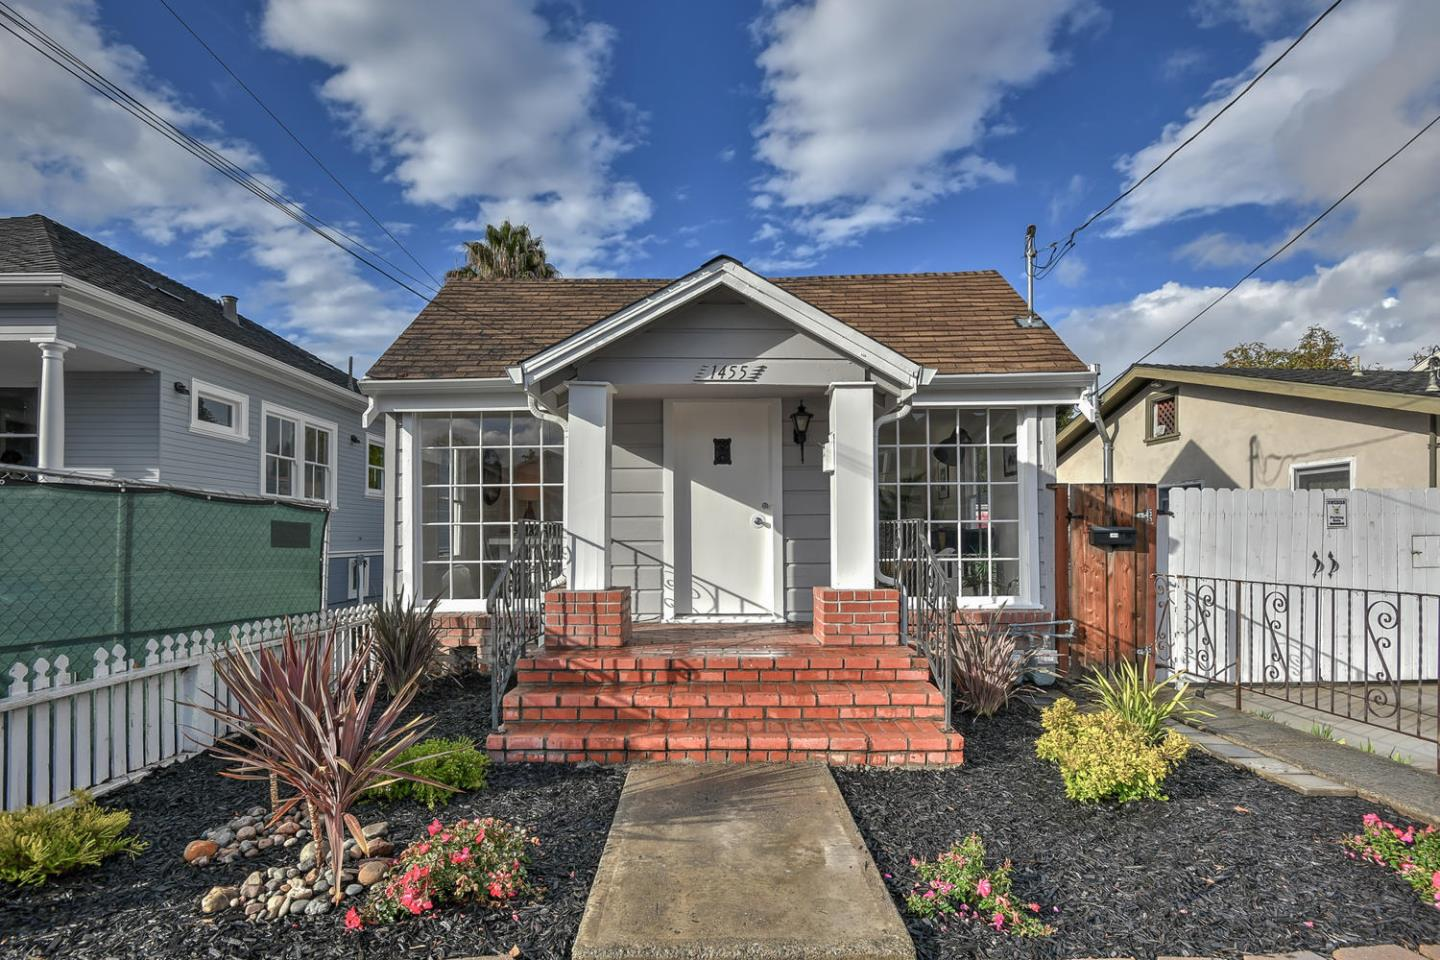 Detail Gallery Image 1 of 1 For 1455 Bellomy St, Santa Clara, CA 95050 - – Beds | – Baths